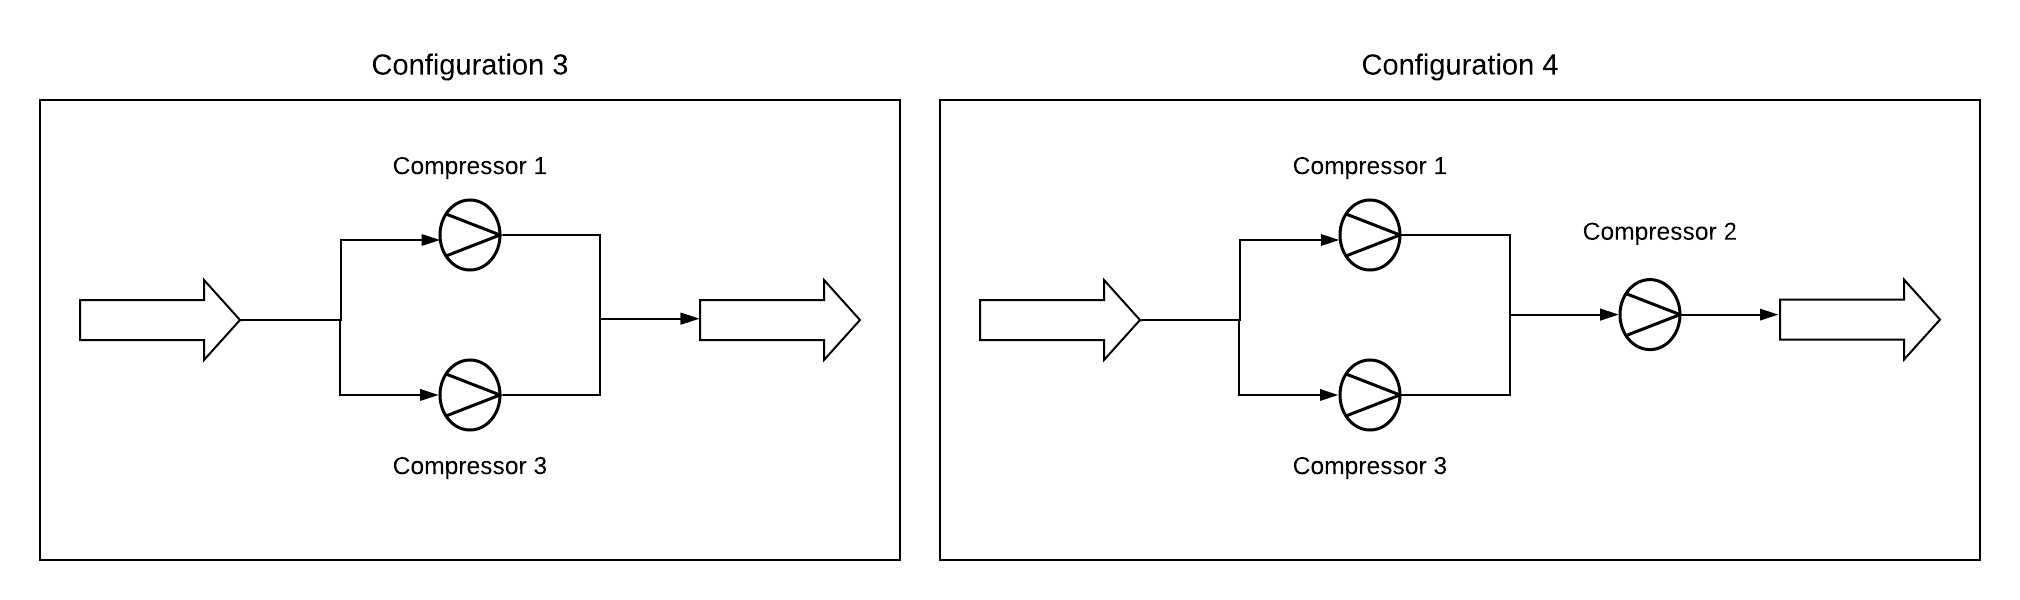 jupyter/2020-09-23_wednesday/configurations.png